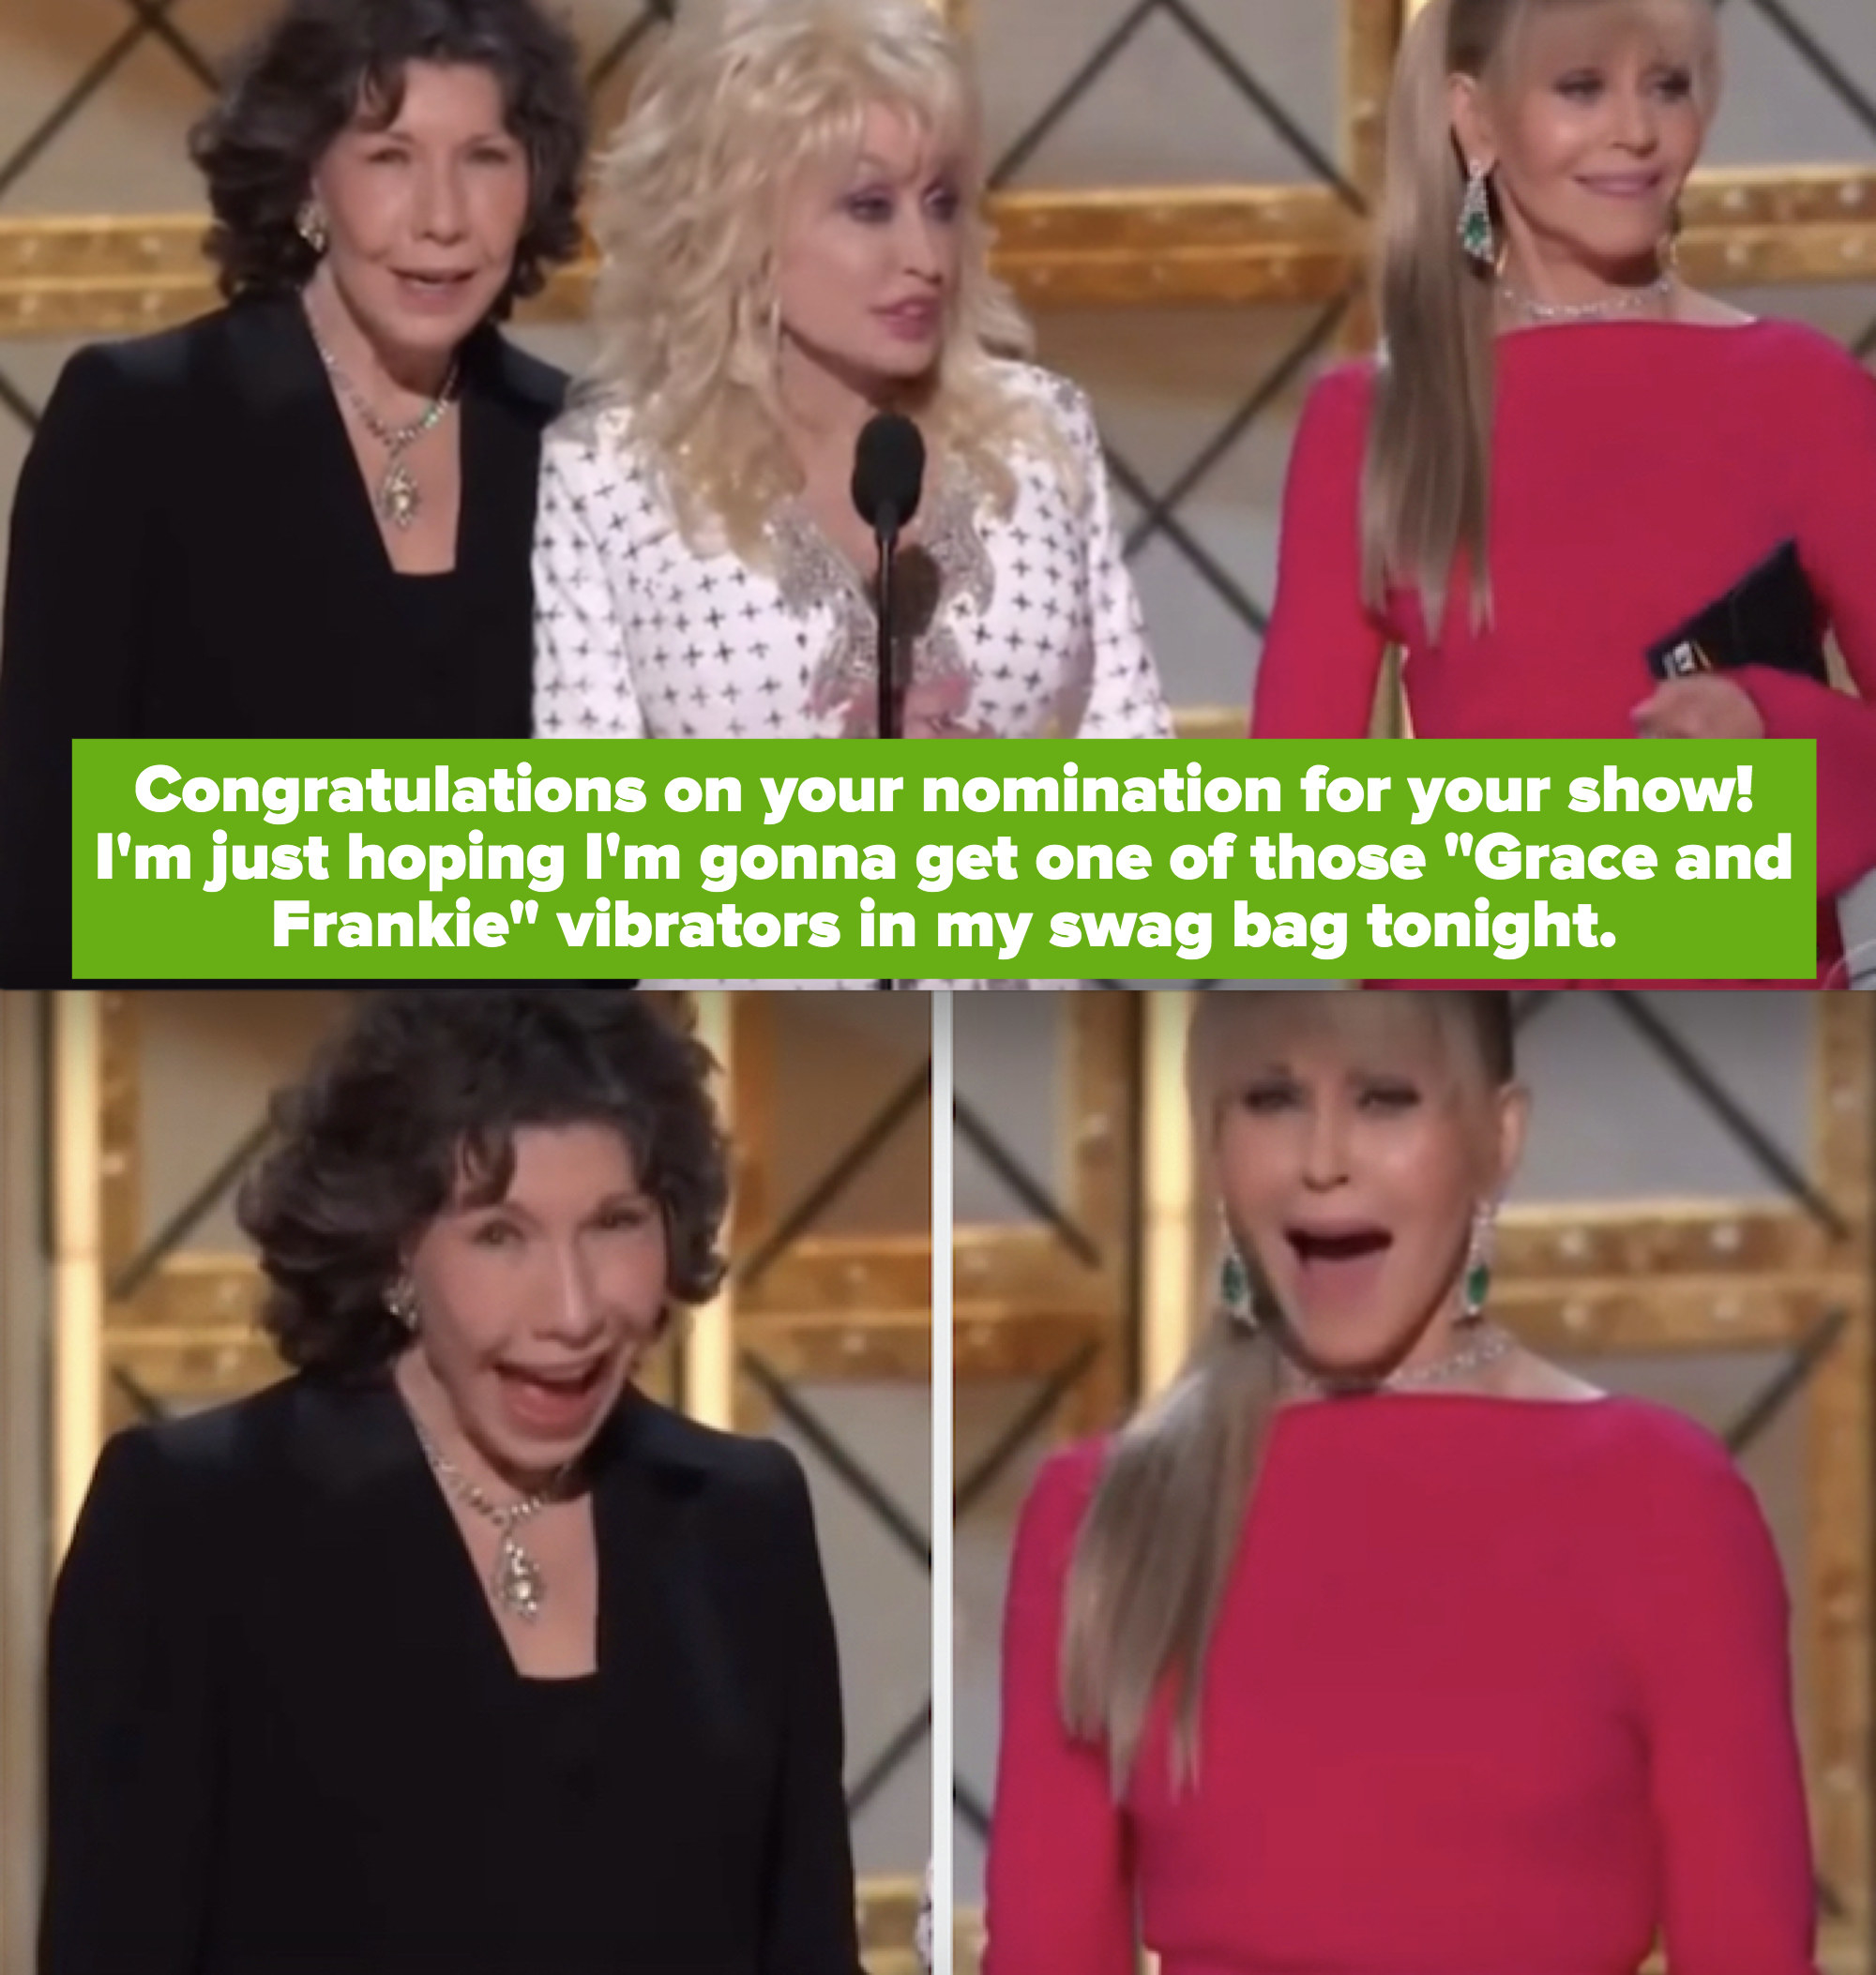 """Dolly to Jane Fonda and Lily Tomlin: """"Congratulations on your nomination for your show! I'm just hoping I'm gonna get one of those 'Grace and Frankie' vibrators in my swag bag tonight"""""""